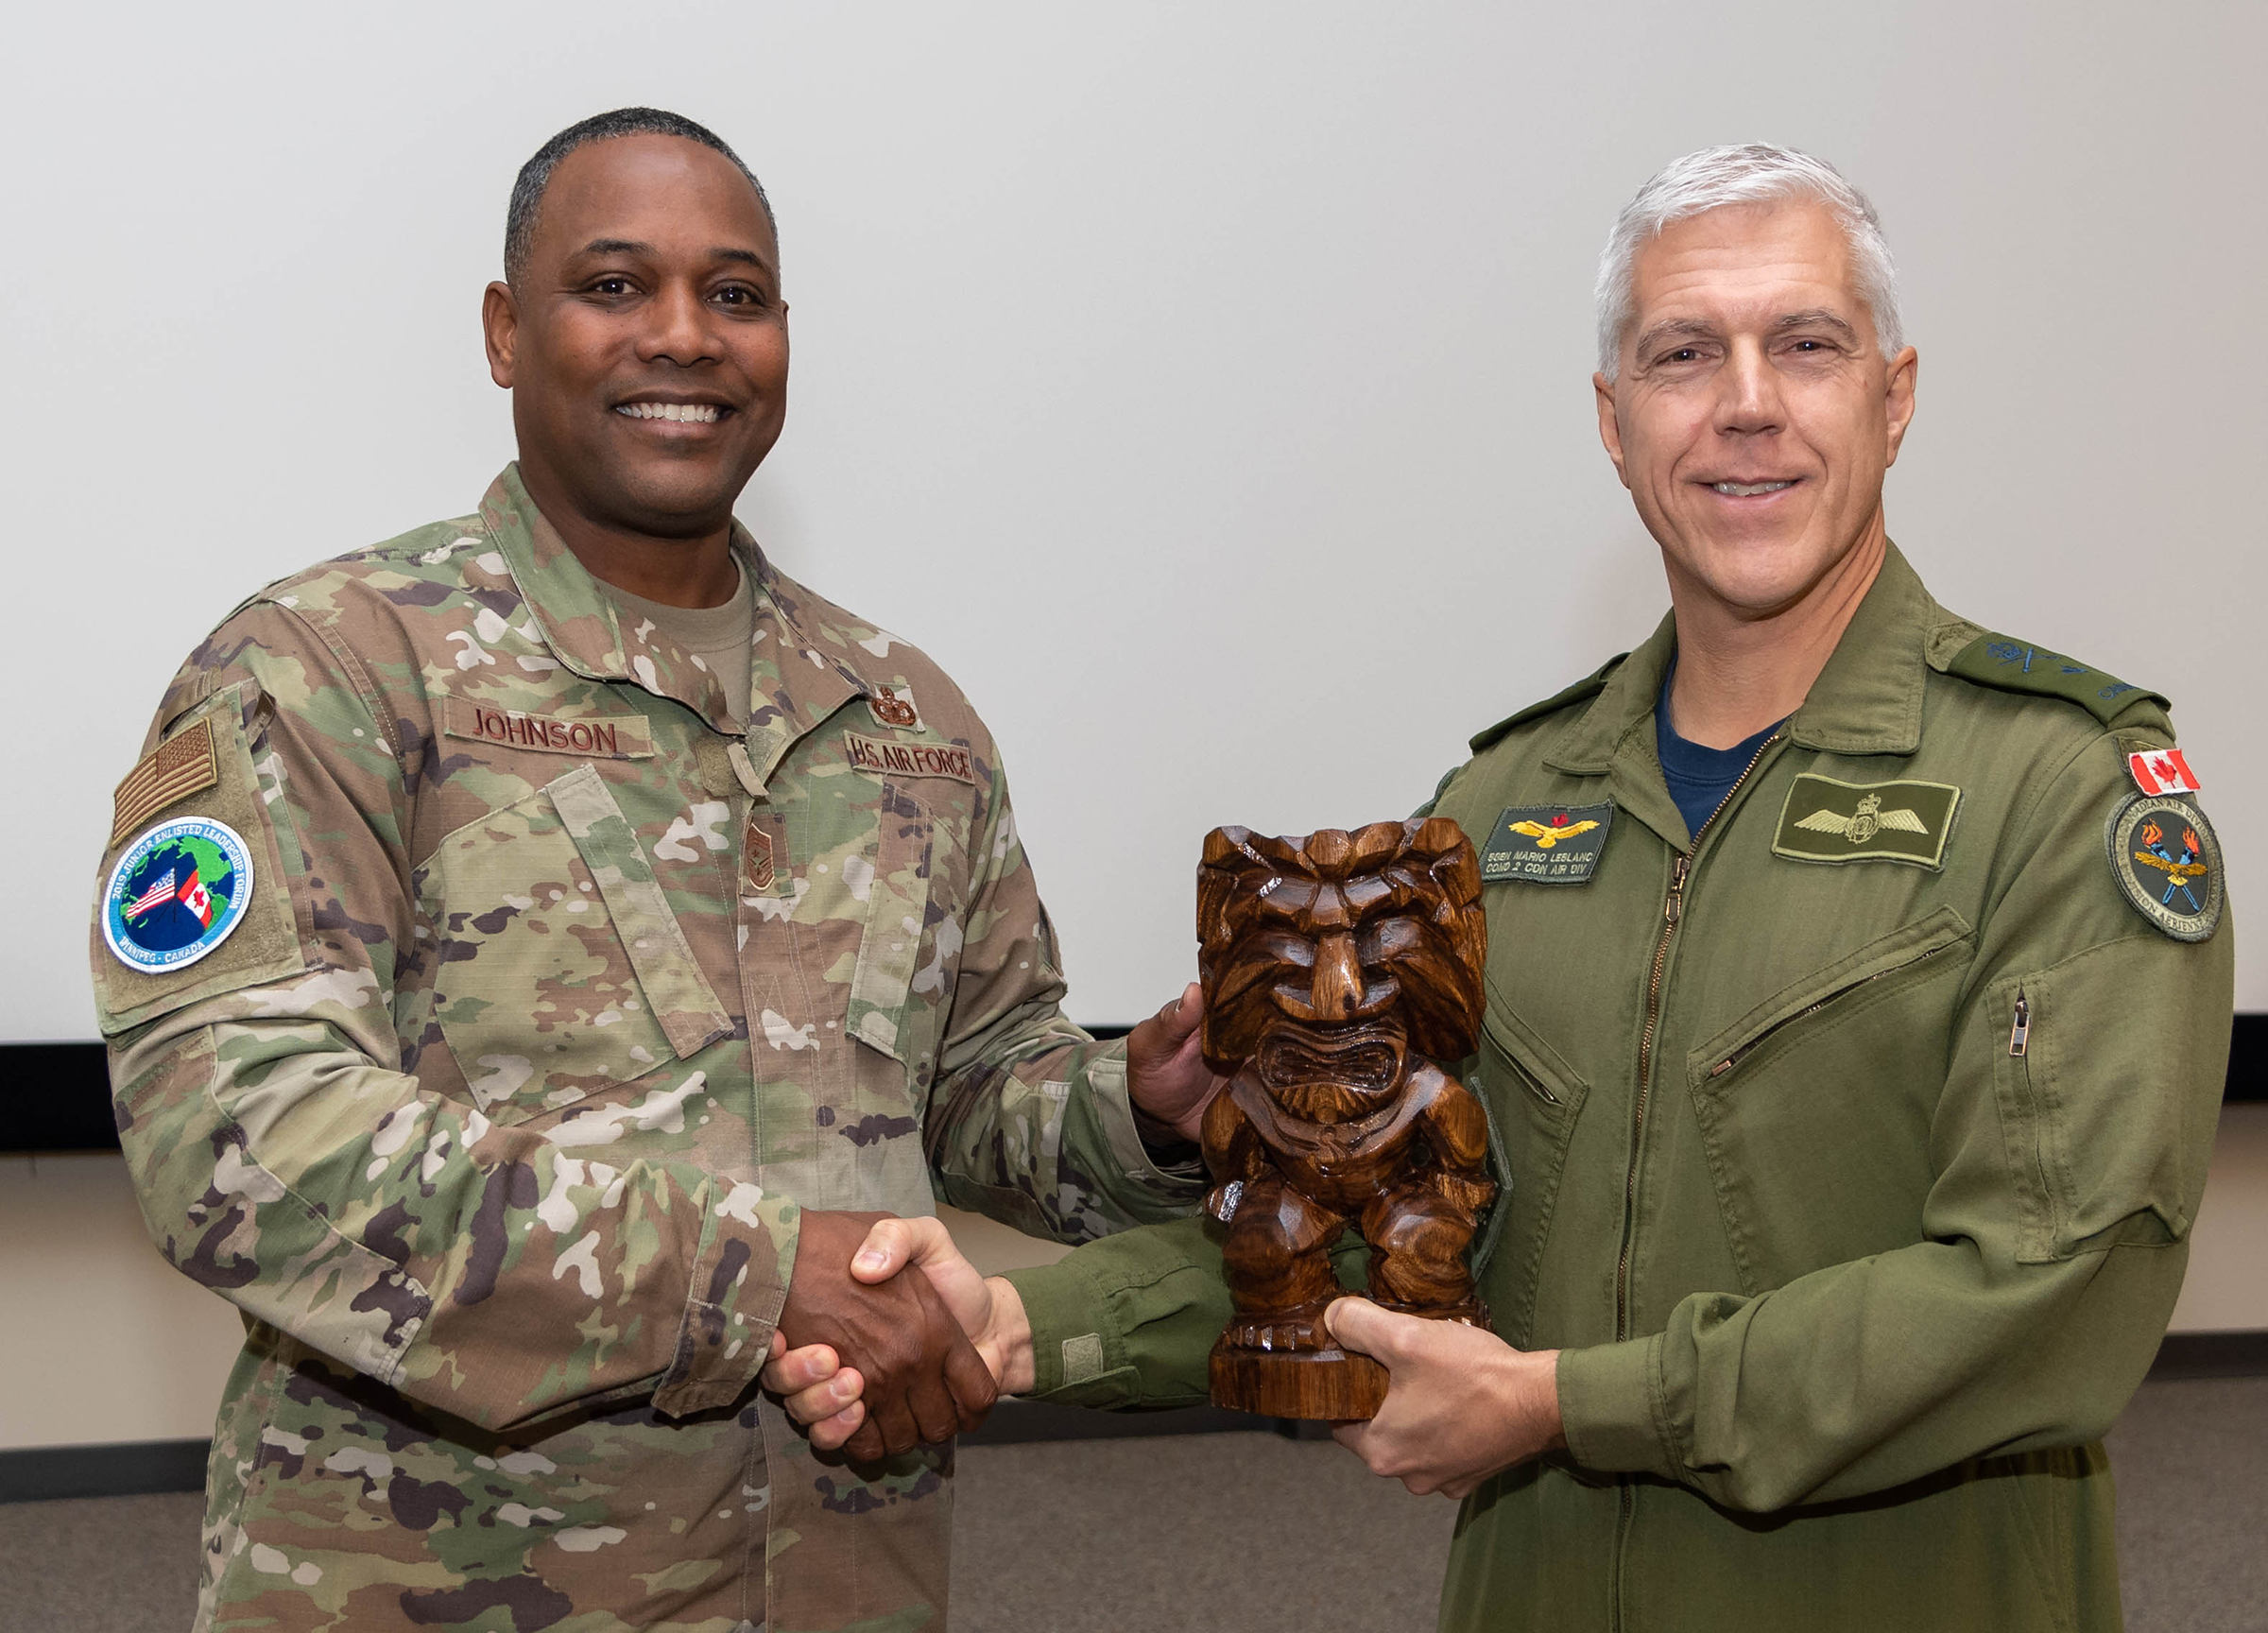 Le brigadier-général Mario Leblanc (à droite), commandant de la 2e Division aérienne du Canada, reçoit un cadeau du Chief Master Sergeant Anthony Johnson, commandant en chef des Pacific Air Forces de la United States Air Force, pendant le Forum de leadership des militaires du rang subalternes, tenu à la 17e Escadre Winnipeg, au Manitoba, du 21 au 25 octobre 2019. PHOTO : Caporal Brian Lindgren, WG2019-0525-013